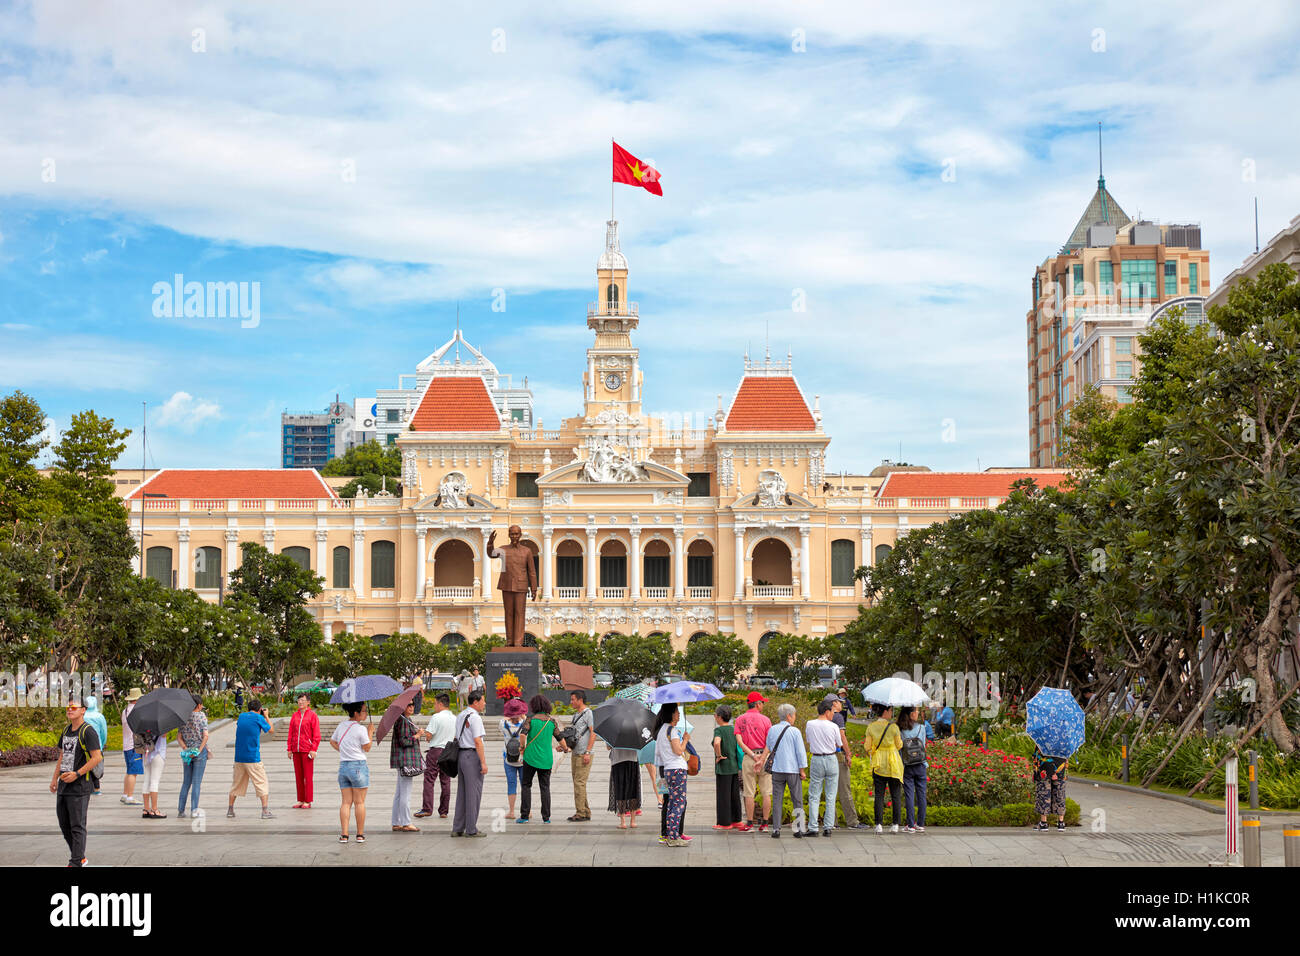 Tourists at Ho Chi Minh Statue in front of People's Committee Building. Ho Chi Minh City, Vietnam. - Stock Image